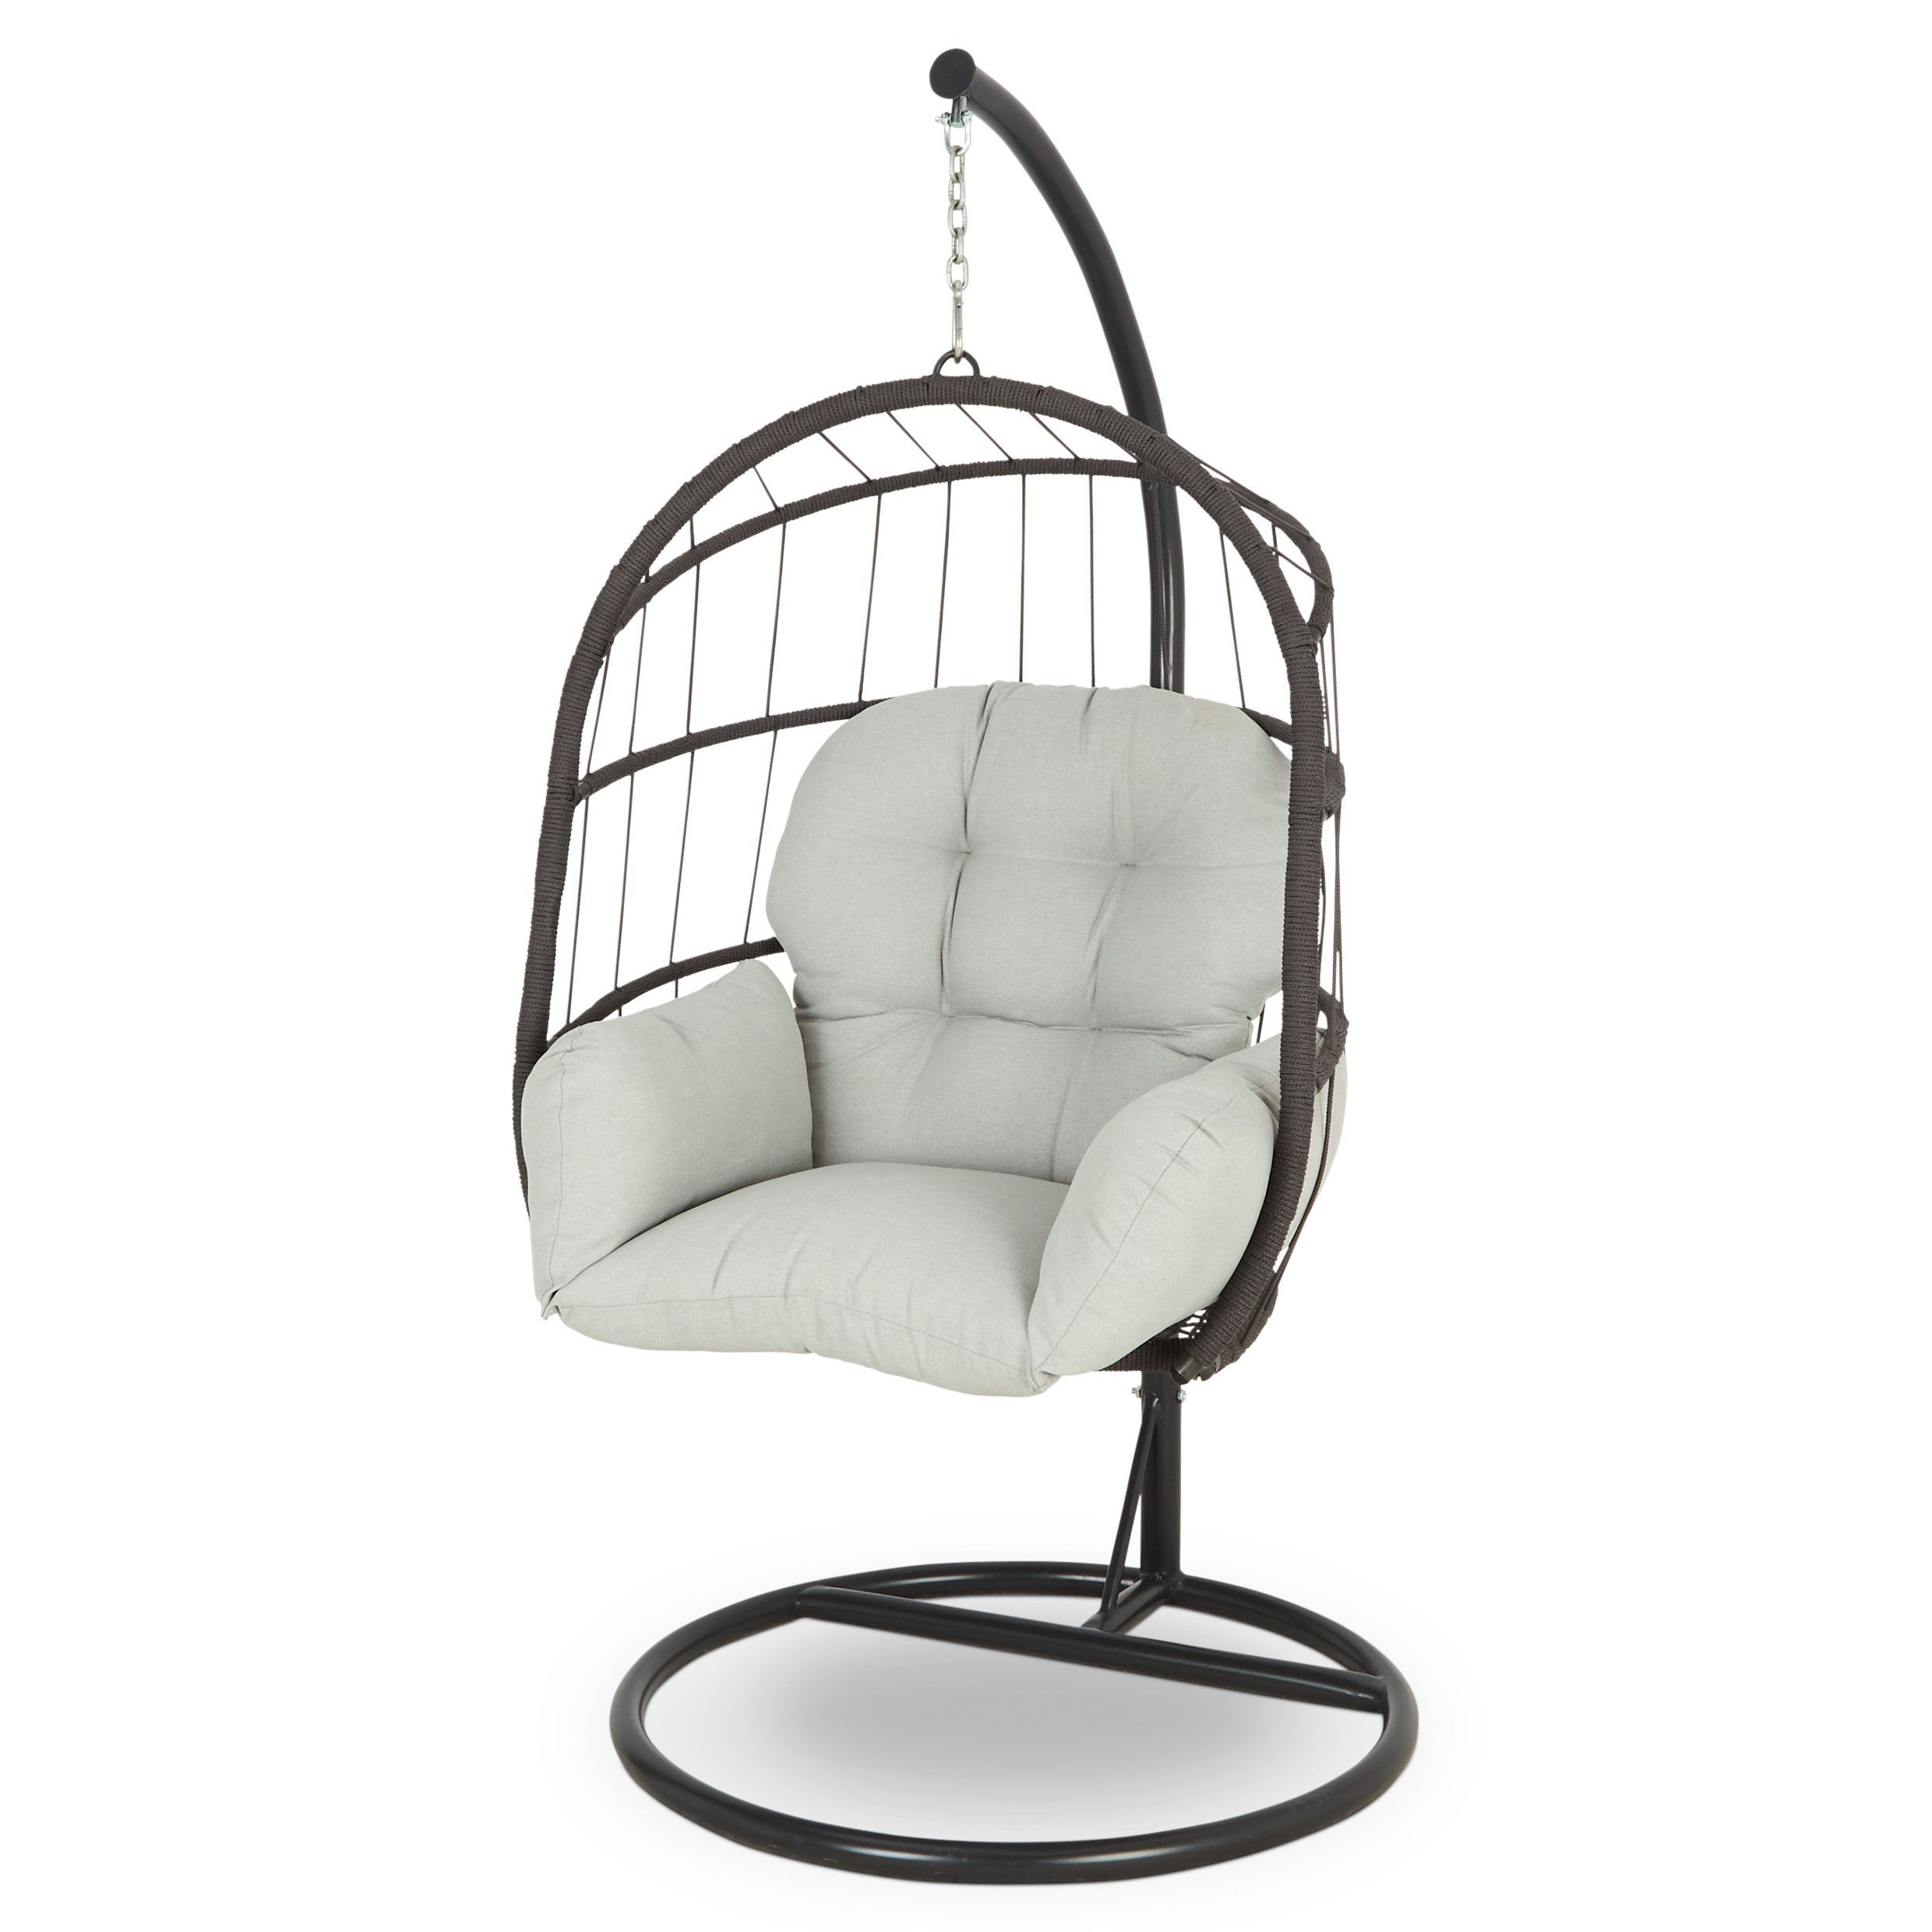 Cannock Metal Egg Chair - B&Q for all your home and garden